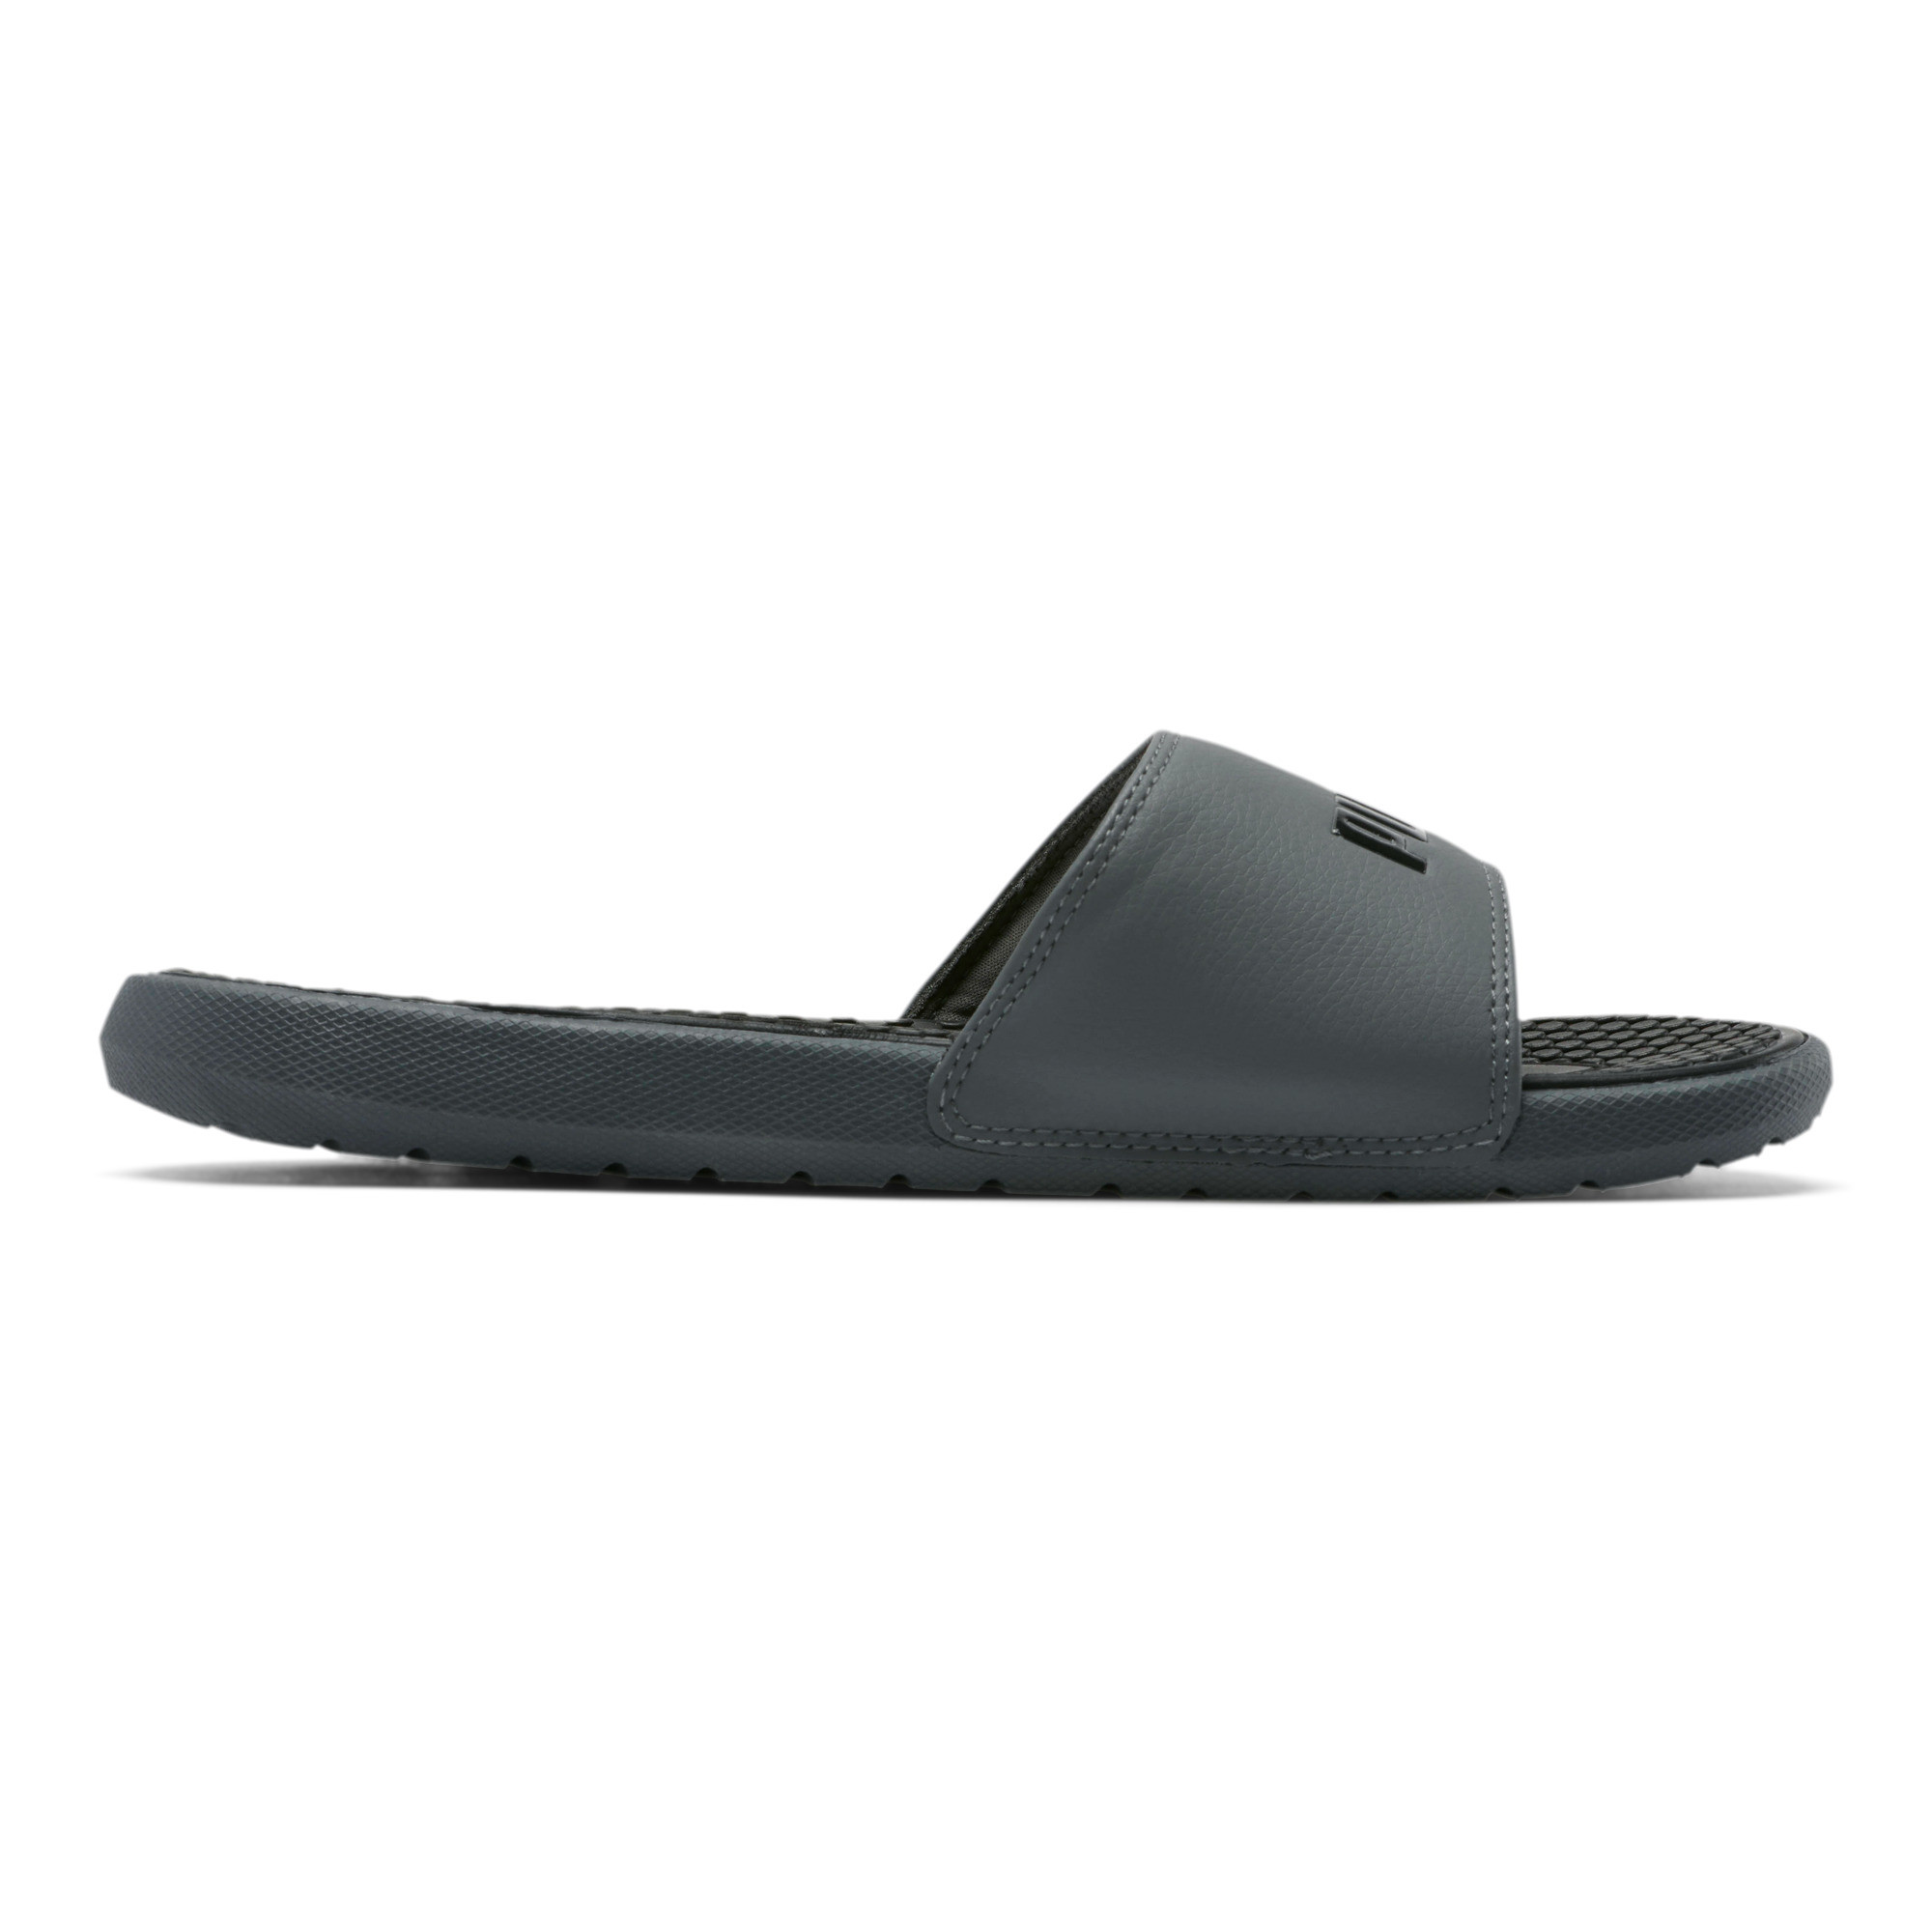 PUMA-Women-039-s-Cool-Cat-Slides thumbnail 12